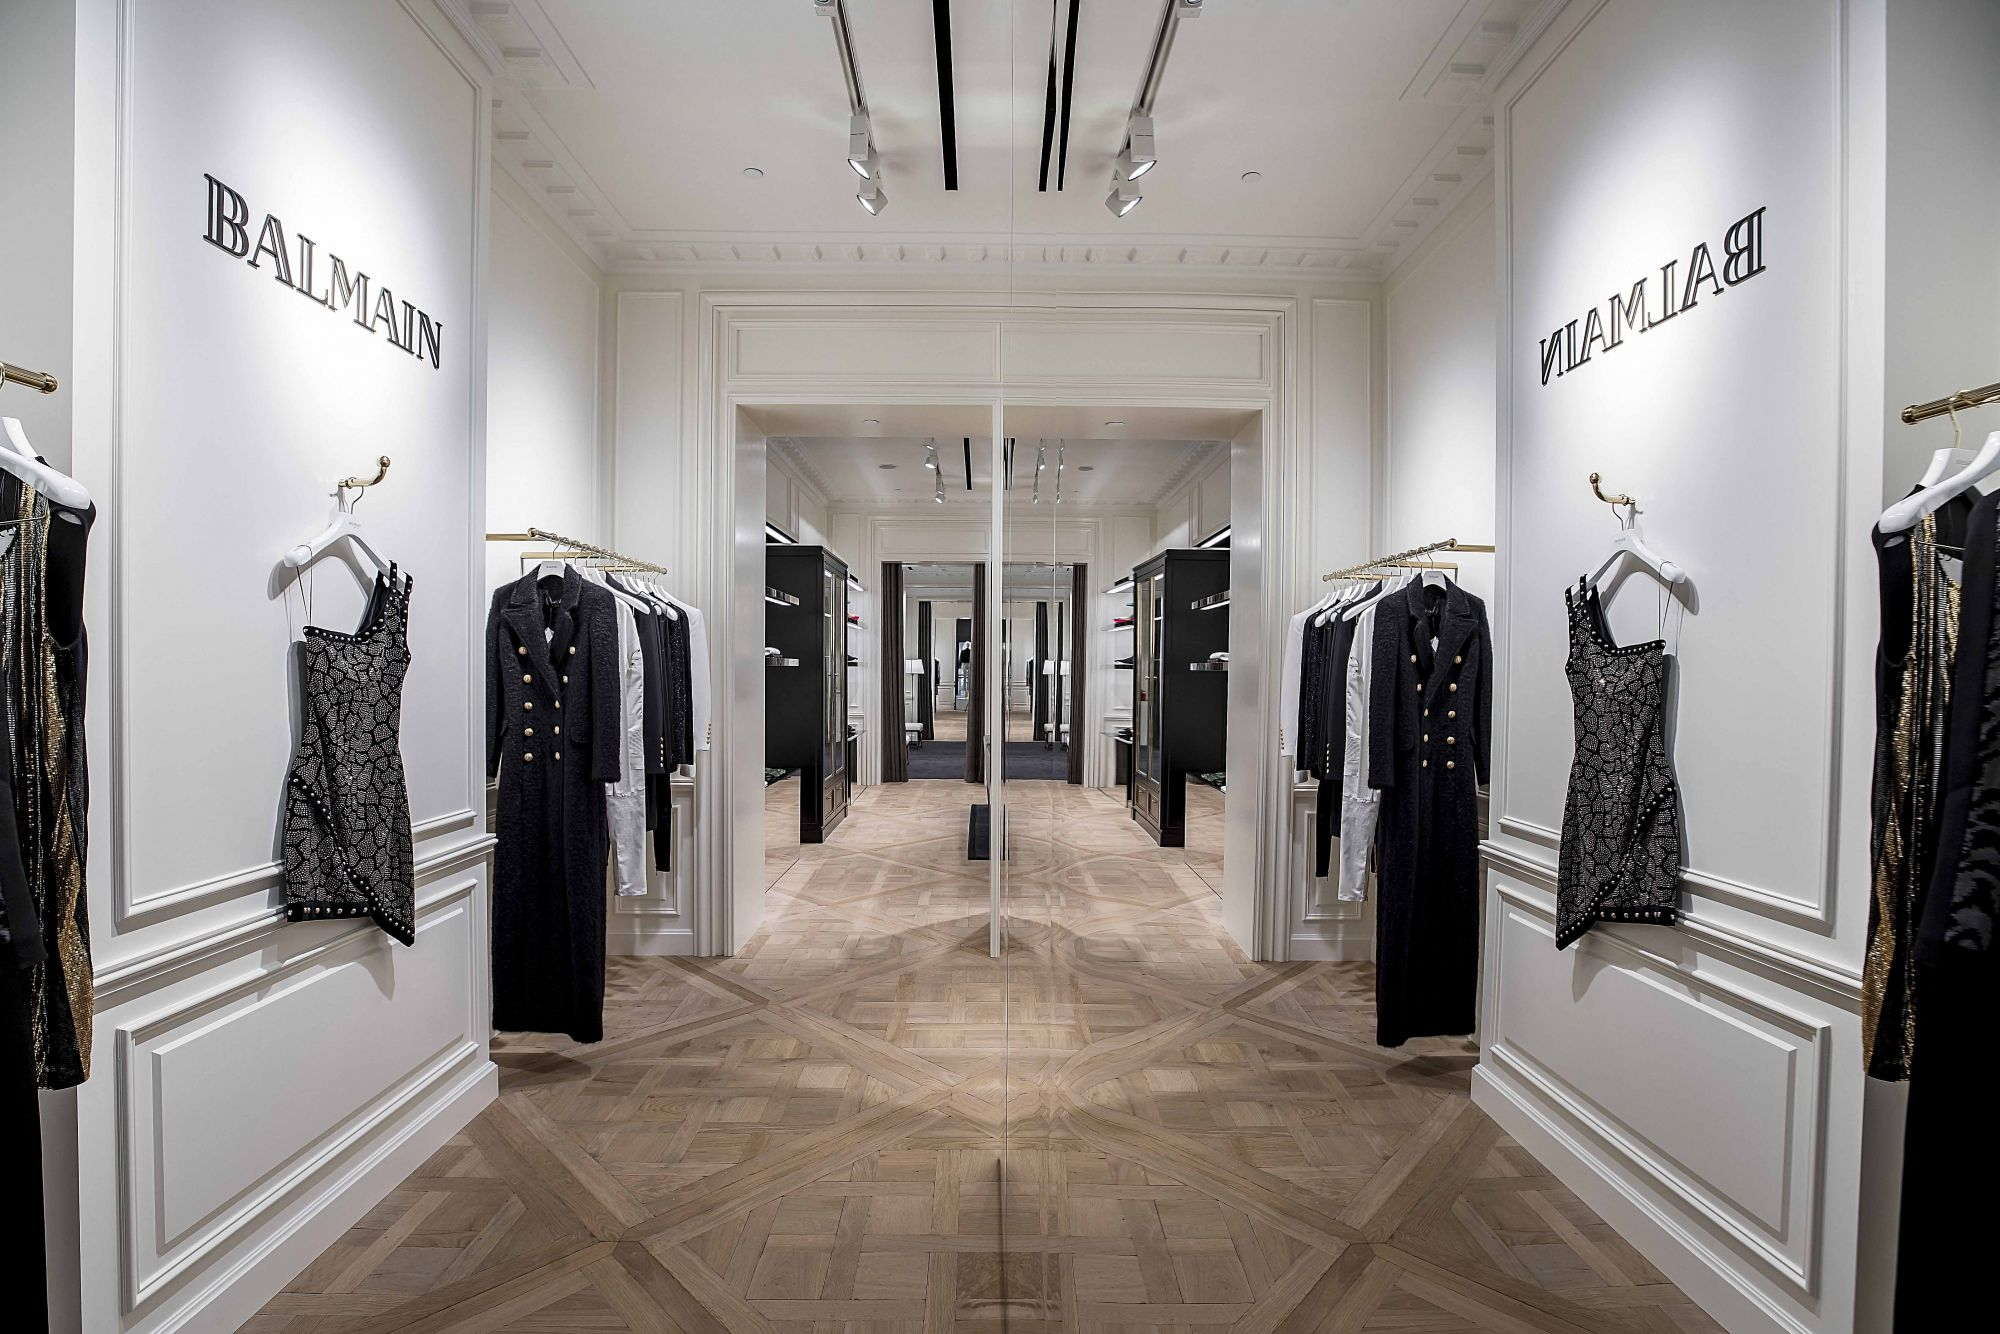 e7fa5c6ffc1 Everything You Need To Know About The New Balmain Store In Singapore ...